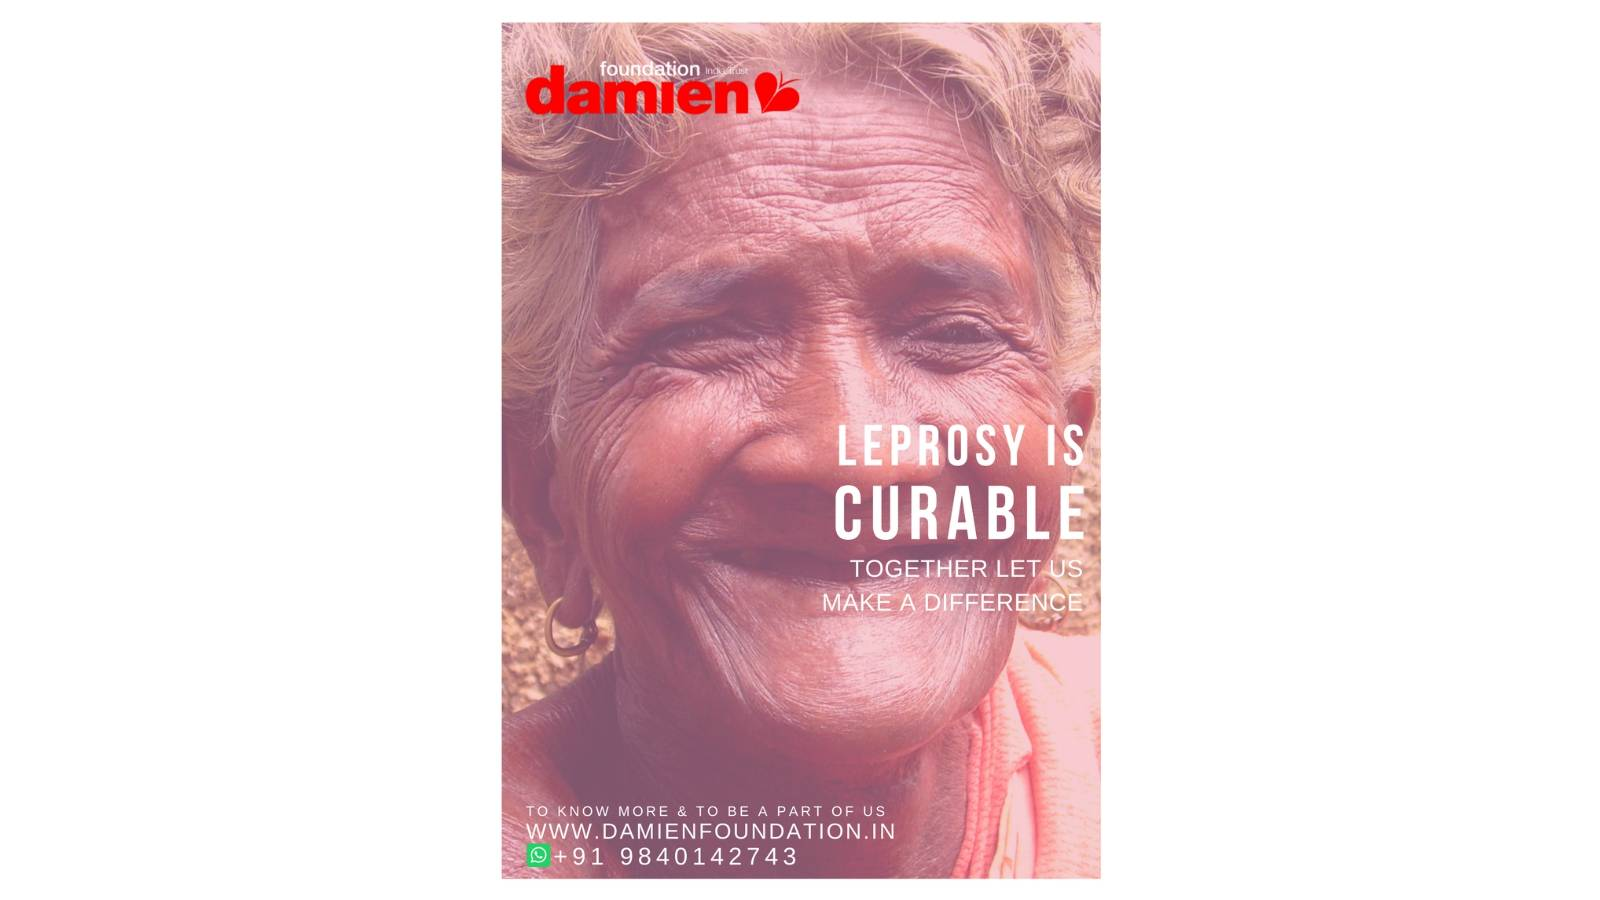 Leprosy Is Curable